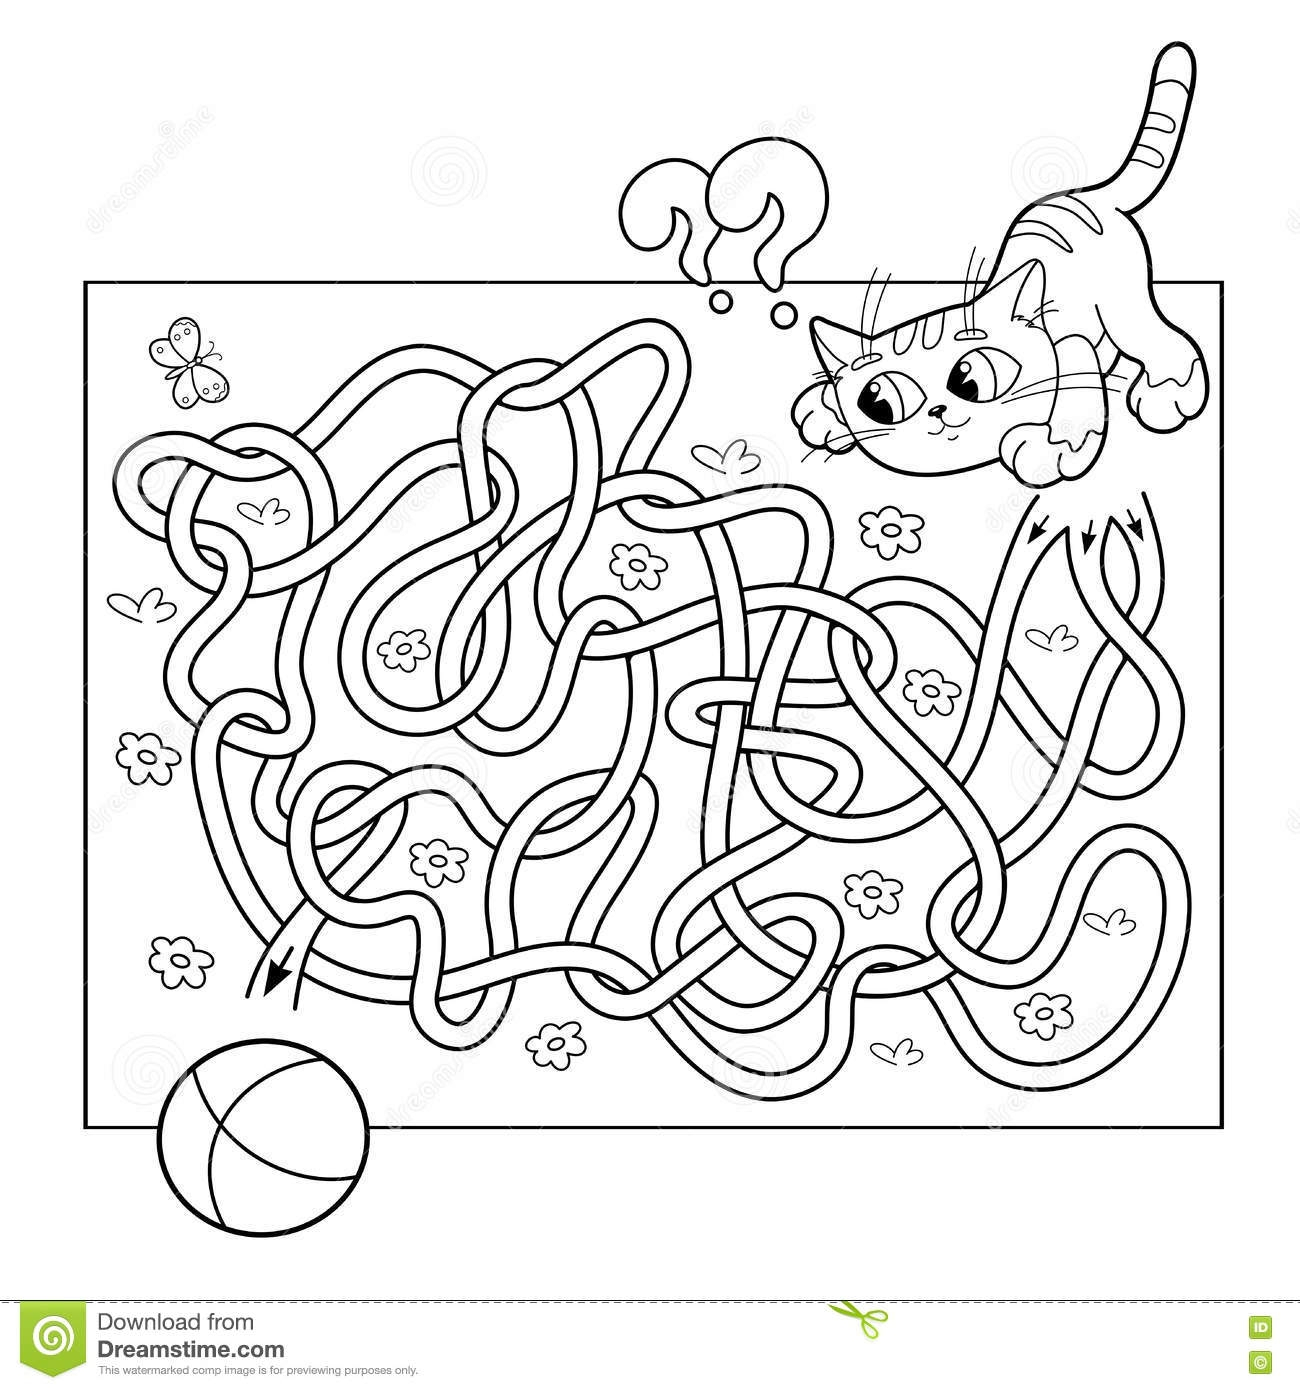 3rd grade coloring pages - stock illustration education maze labyrinth game preschool children puzzle tangled road coloring page outline cat ball cartoon vector image